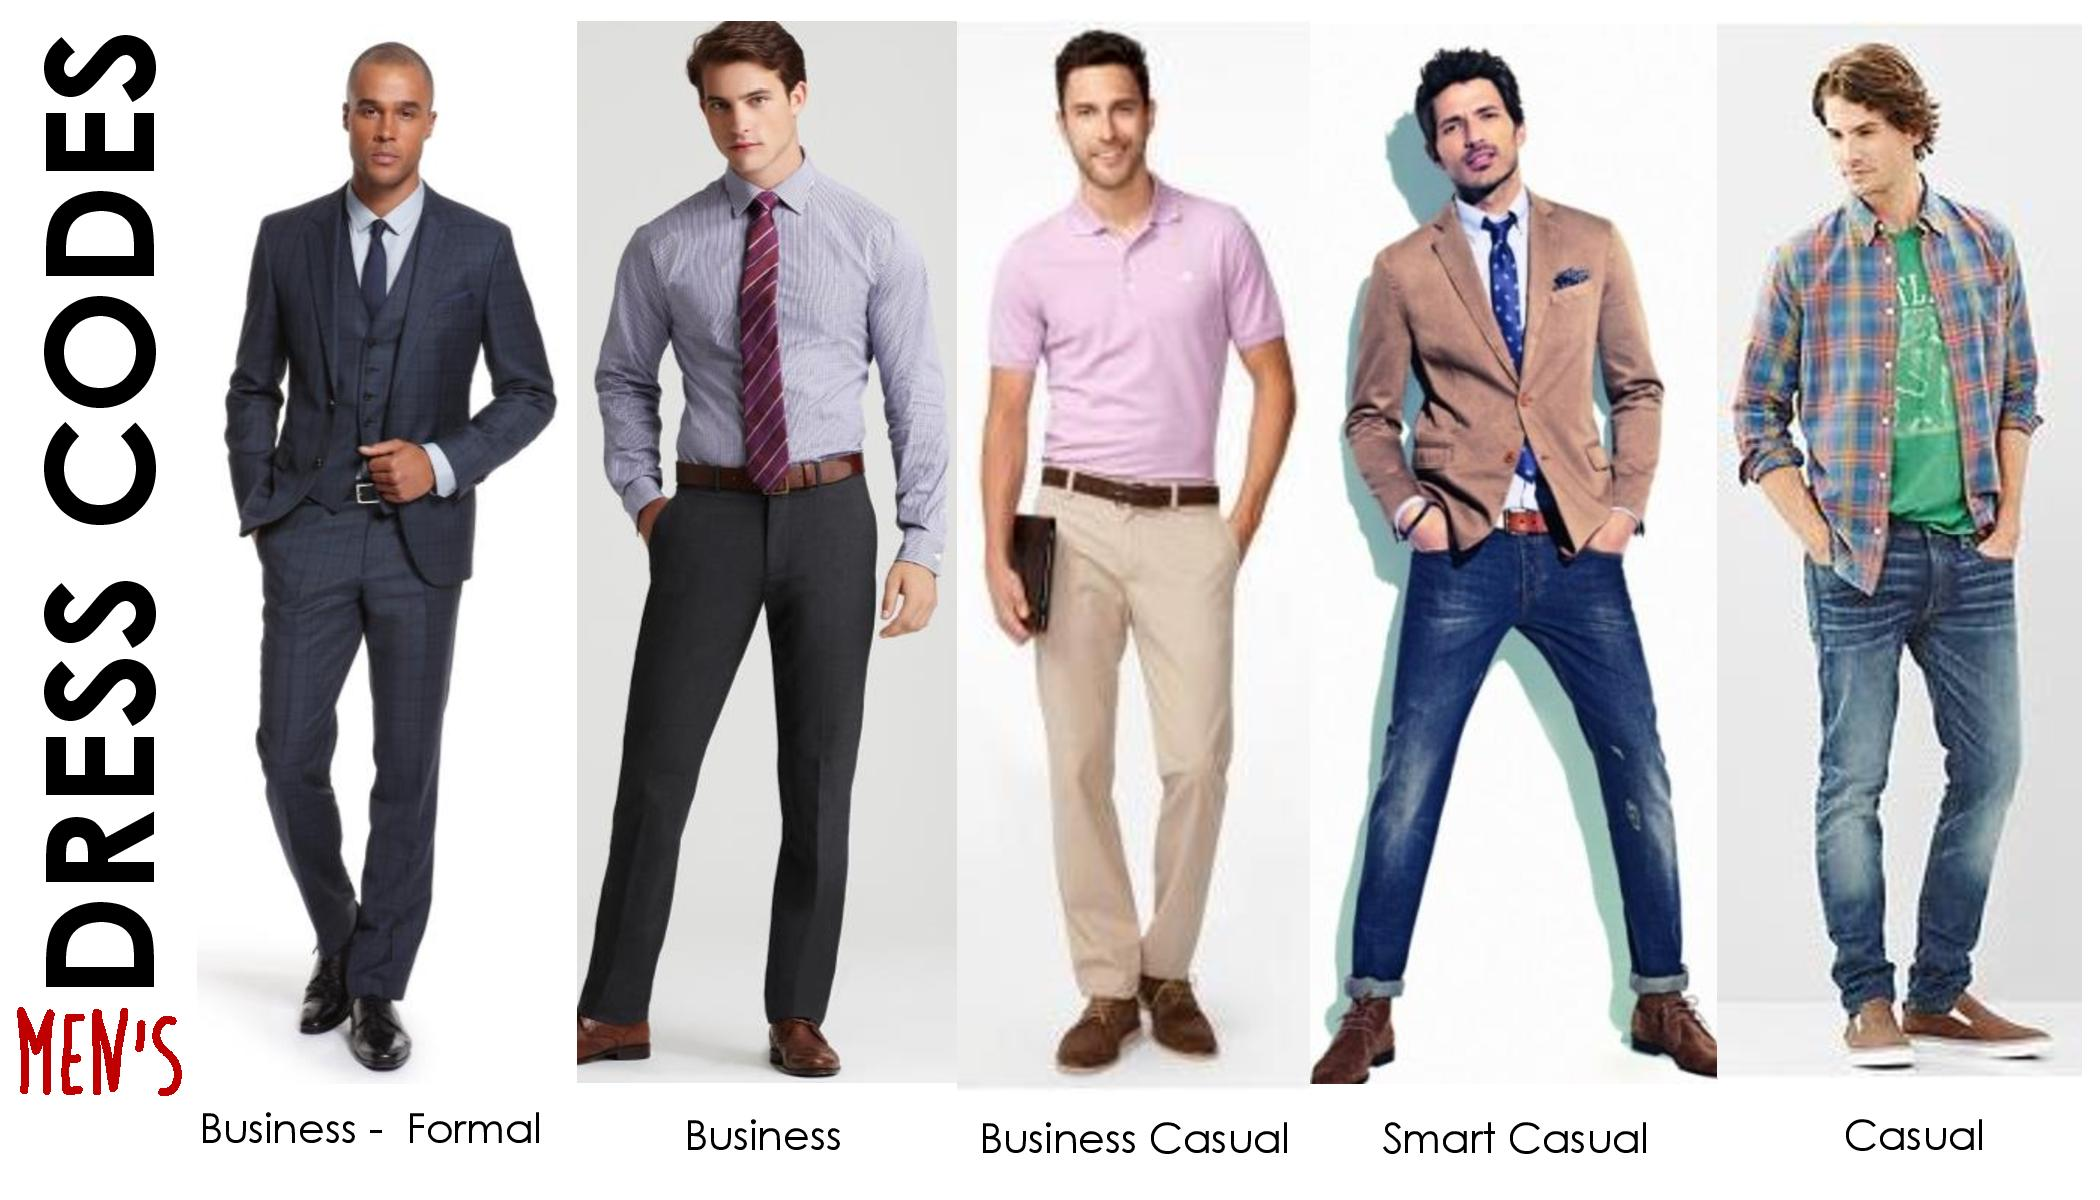 Model Business Casual VS Business Professional